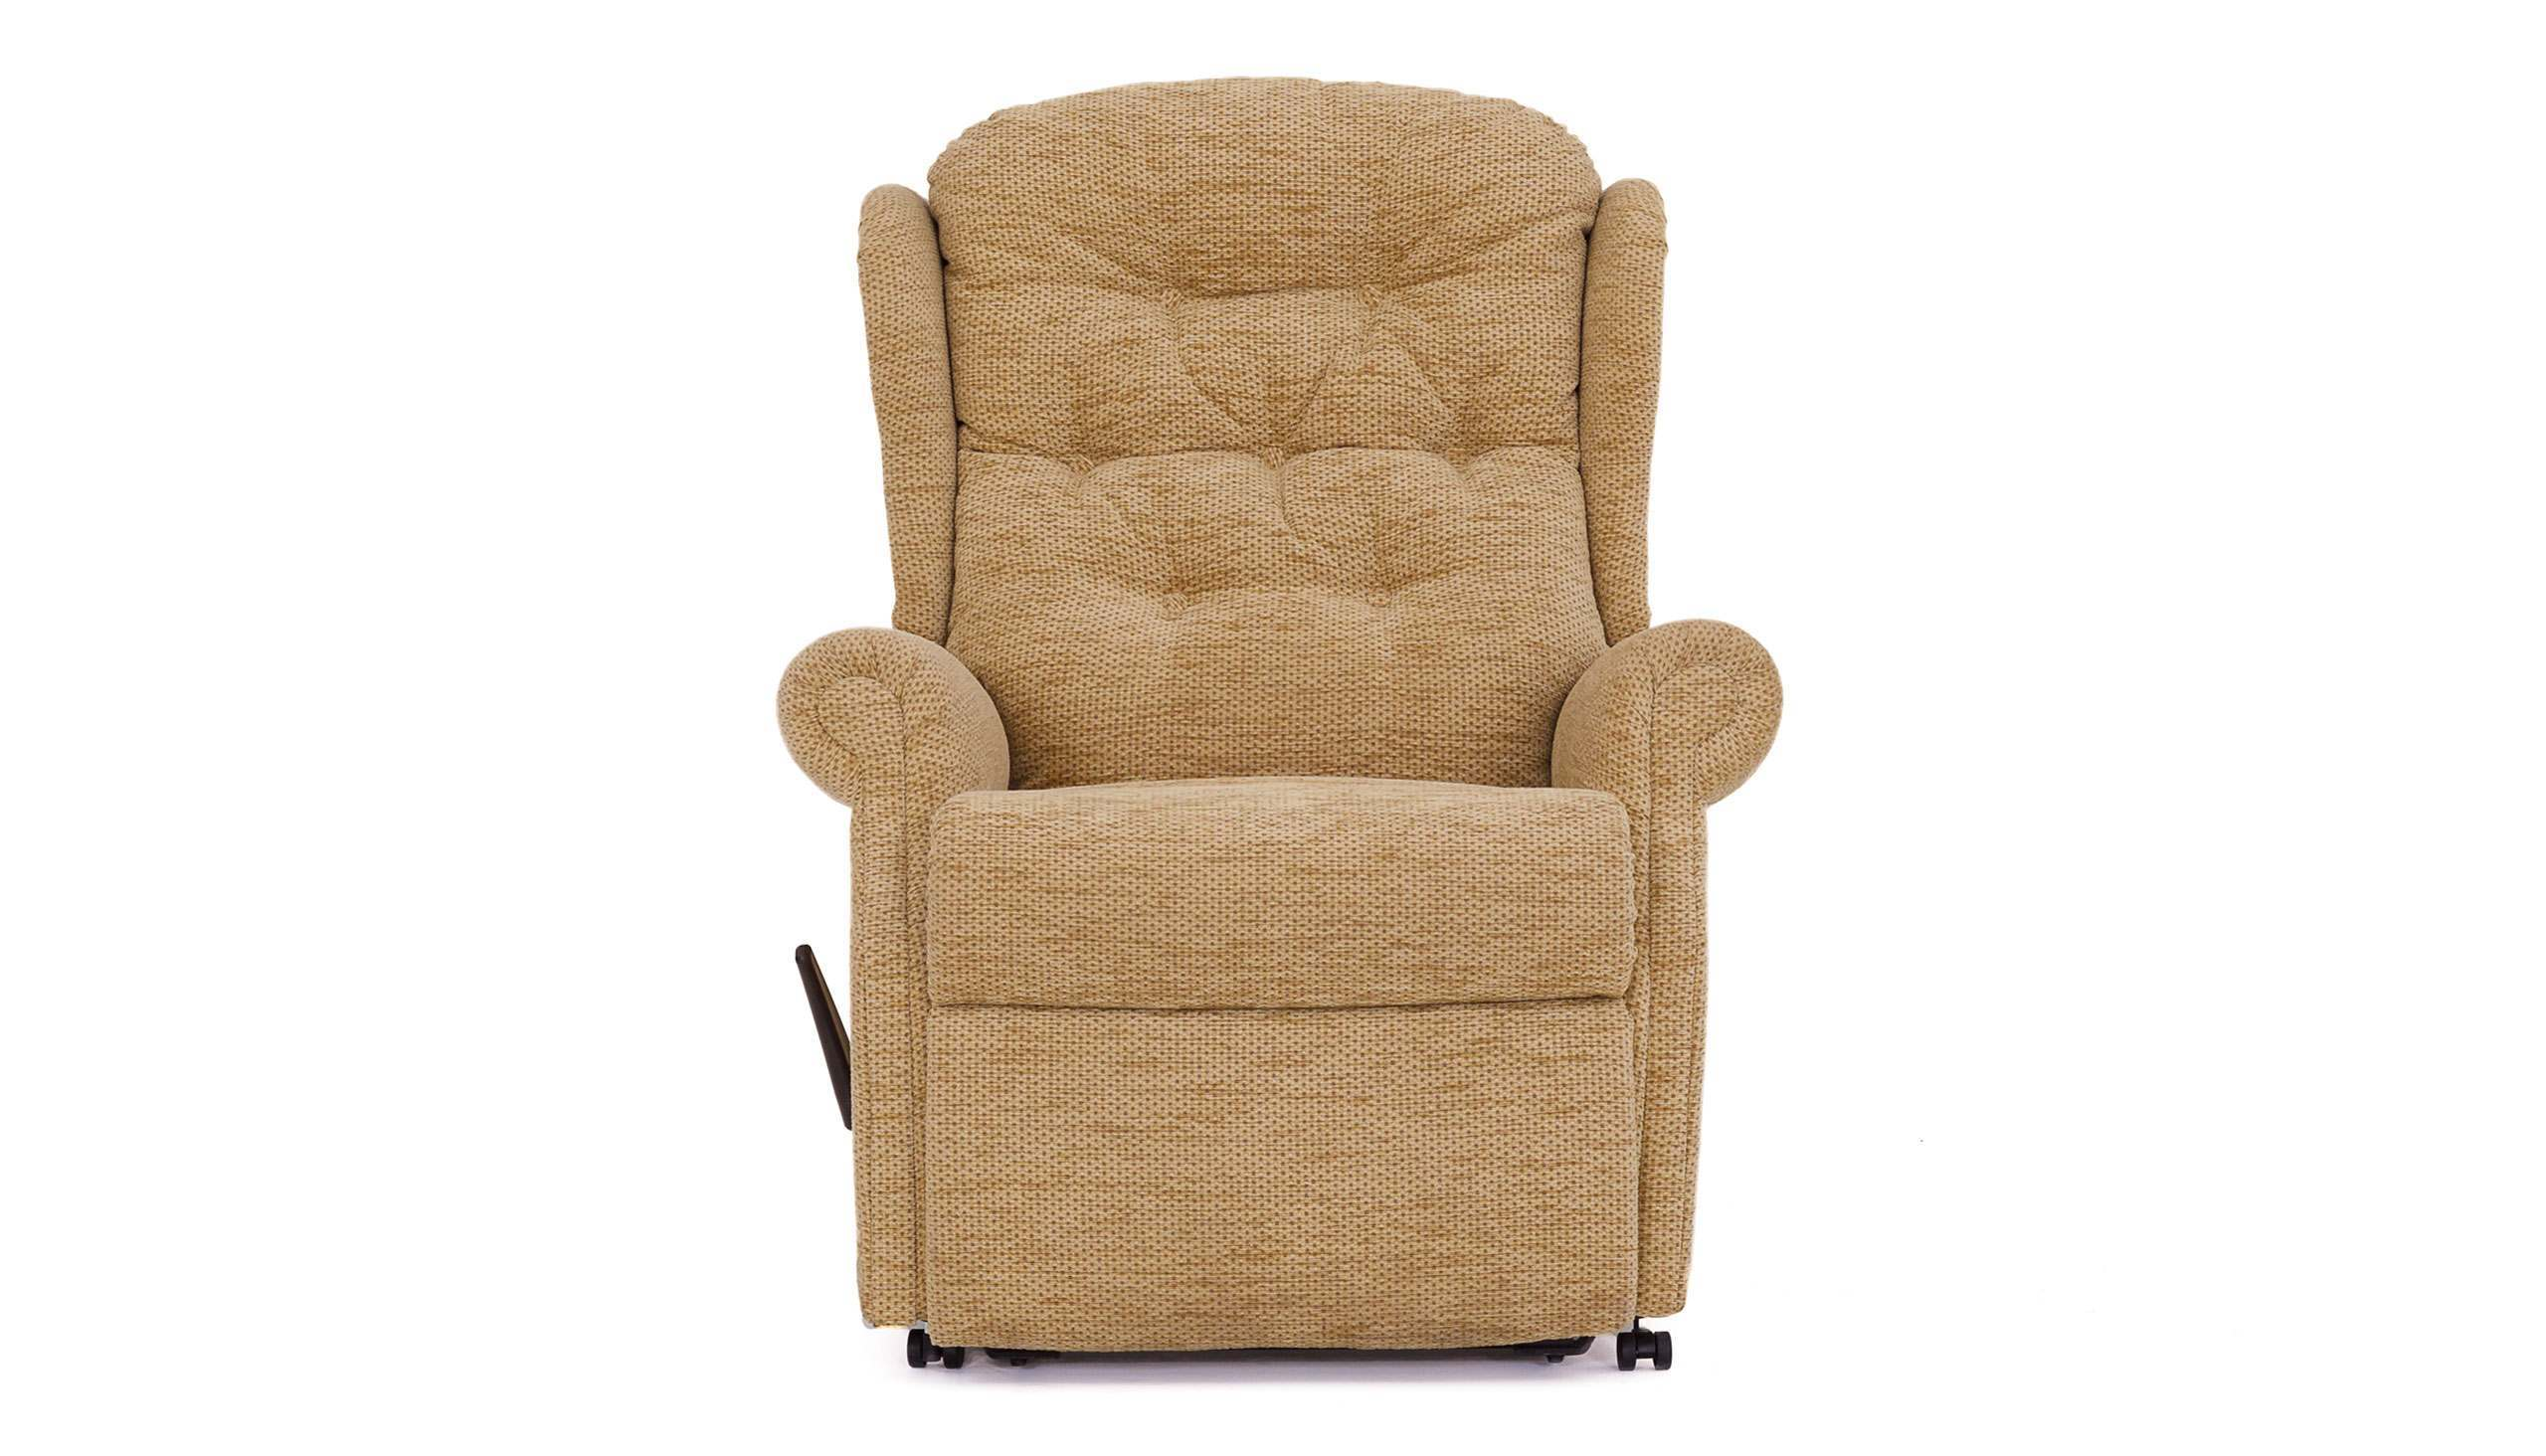 Celebrity Woburn Recliner Chair with lever - AHF Furniture & Carpets